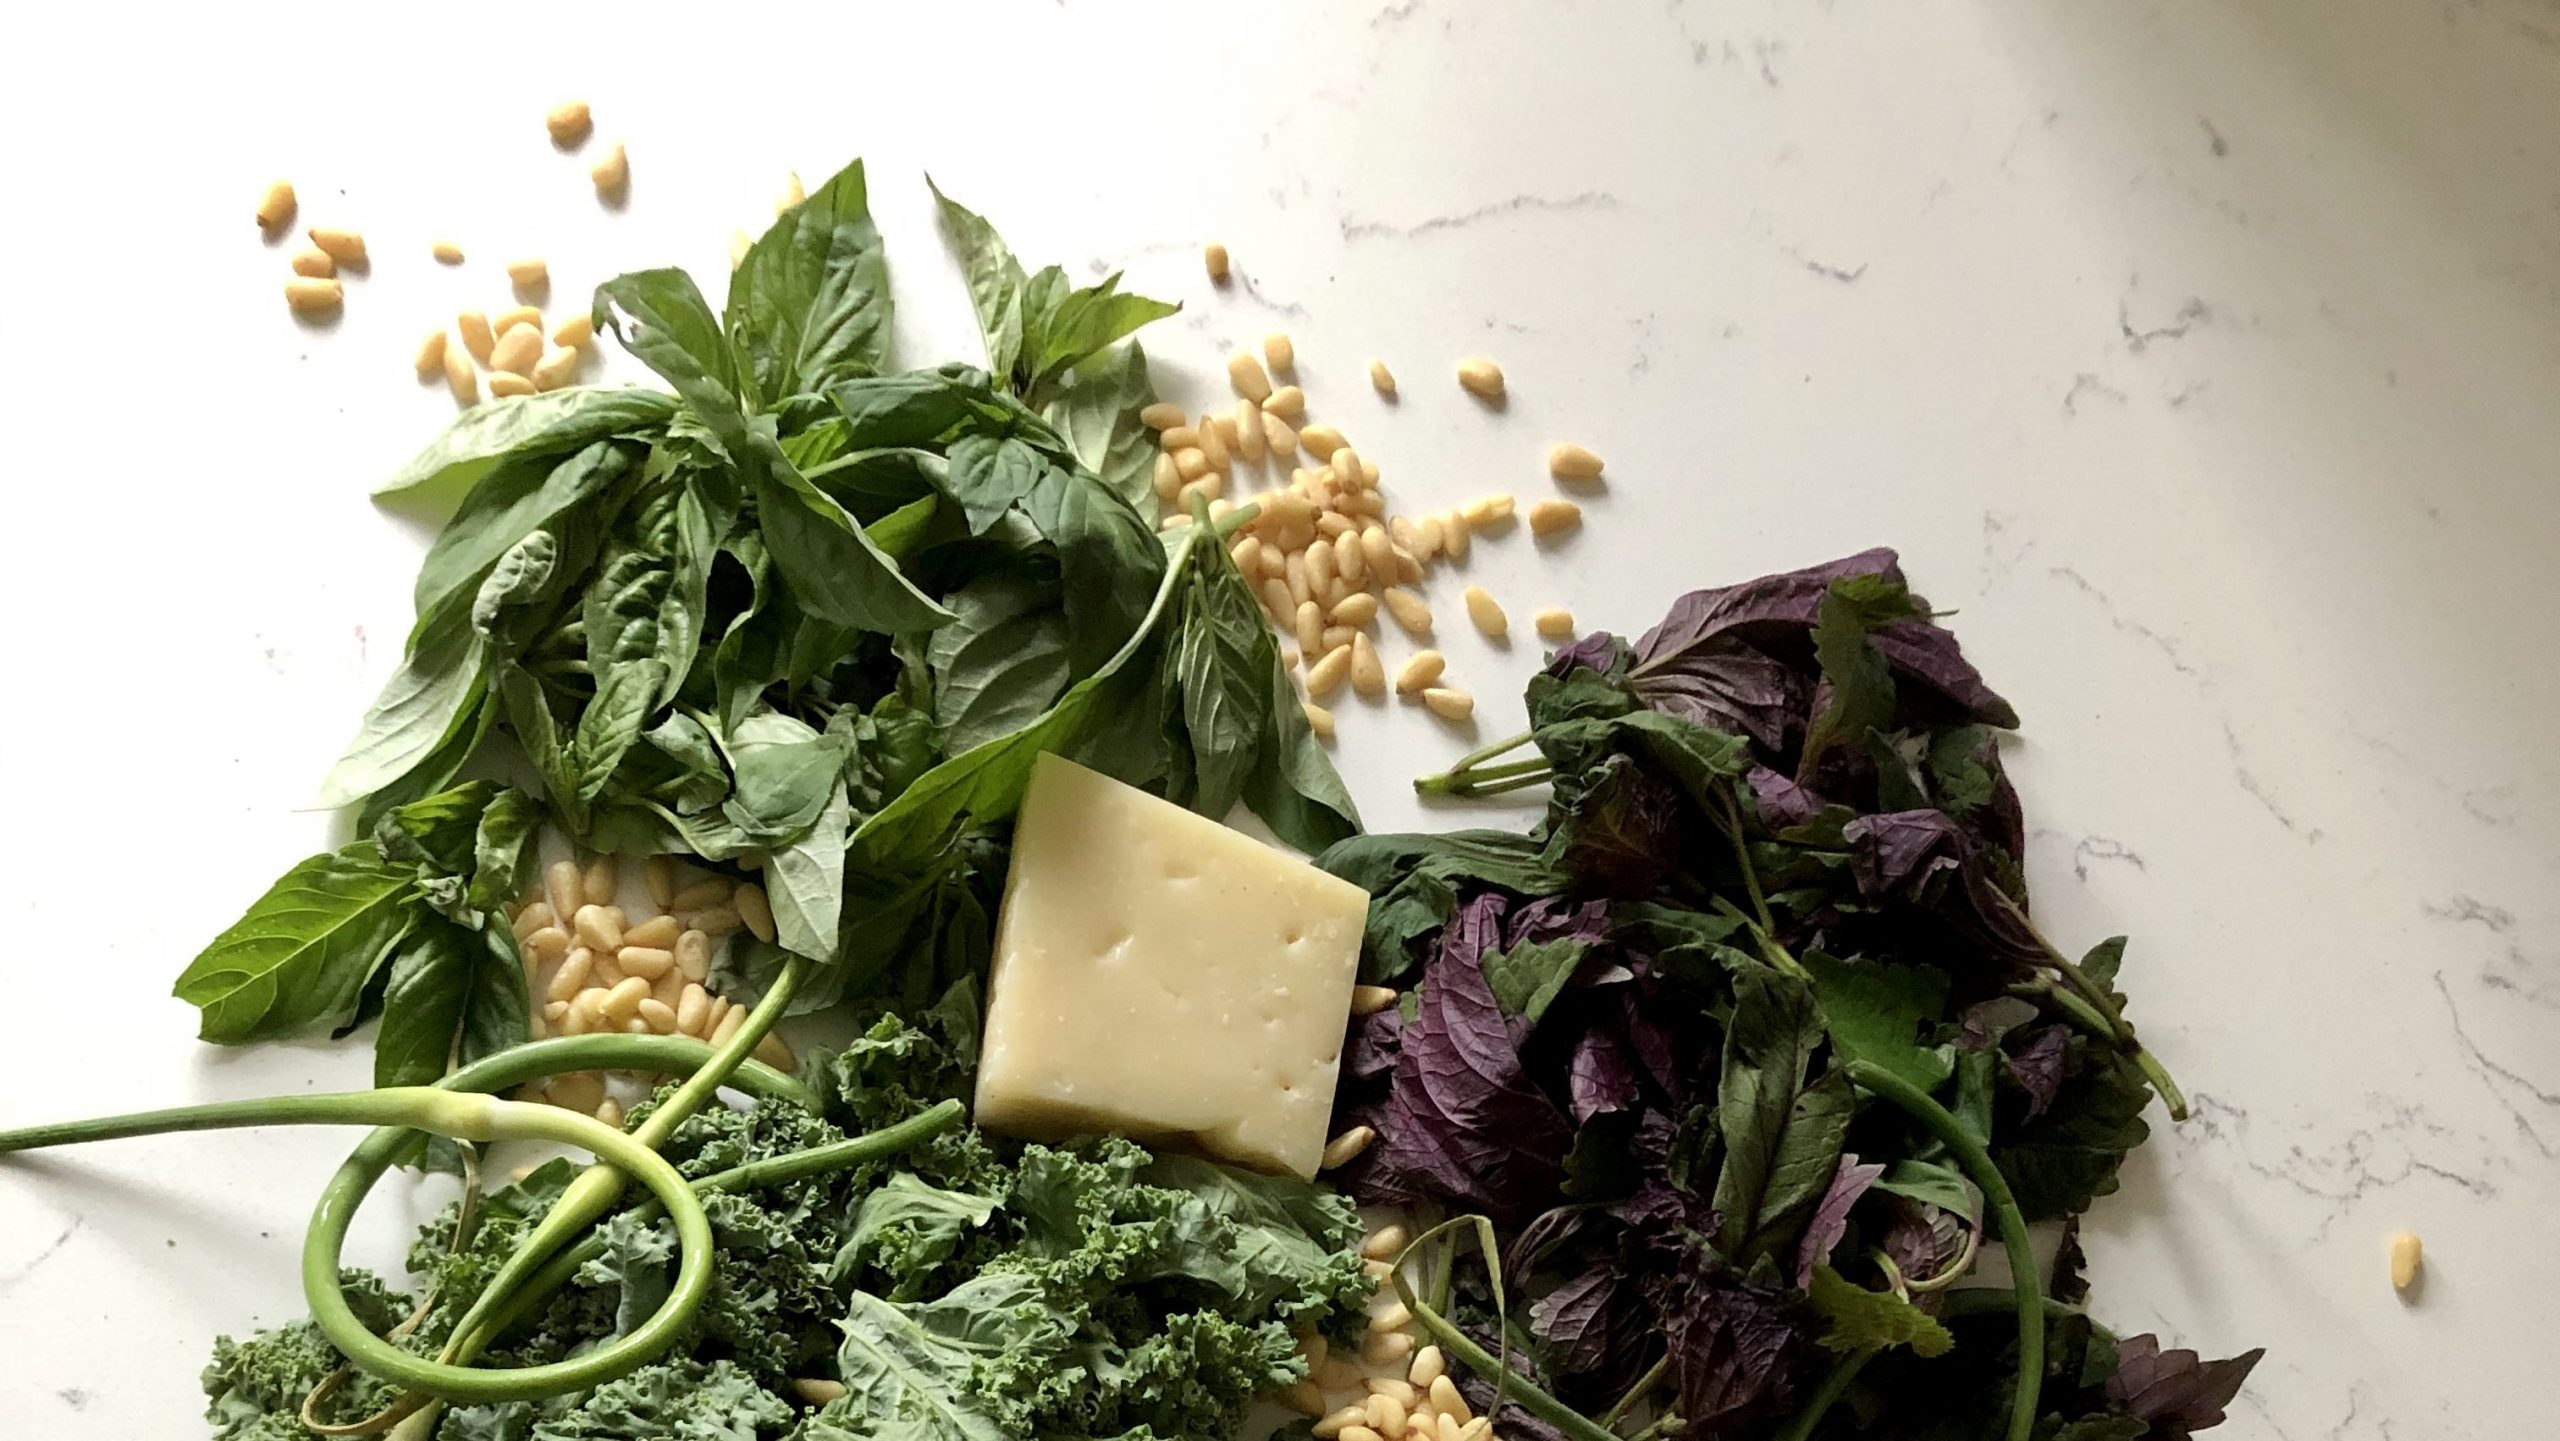 Greens, pine nuts, cloves of garlic, parmesan cheese, and garlic scapes sitting on the counter.